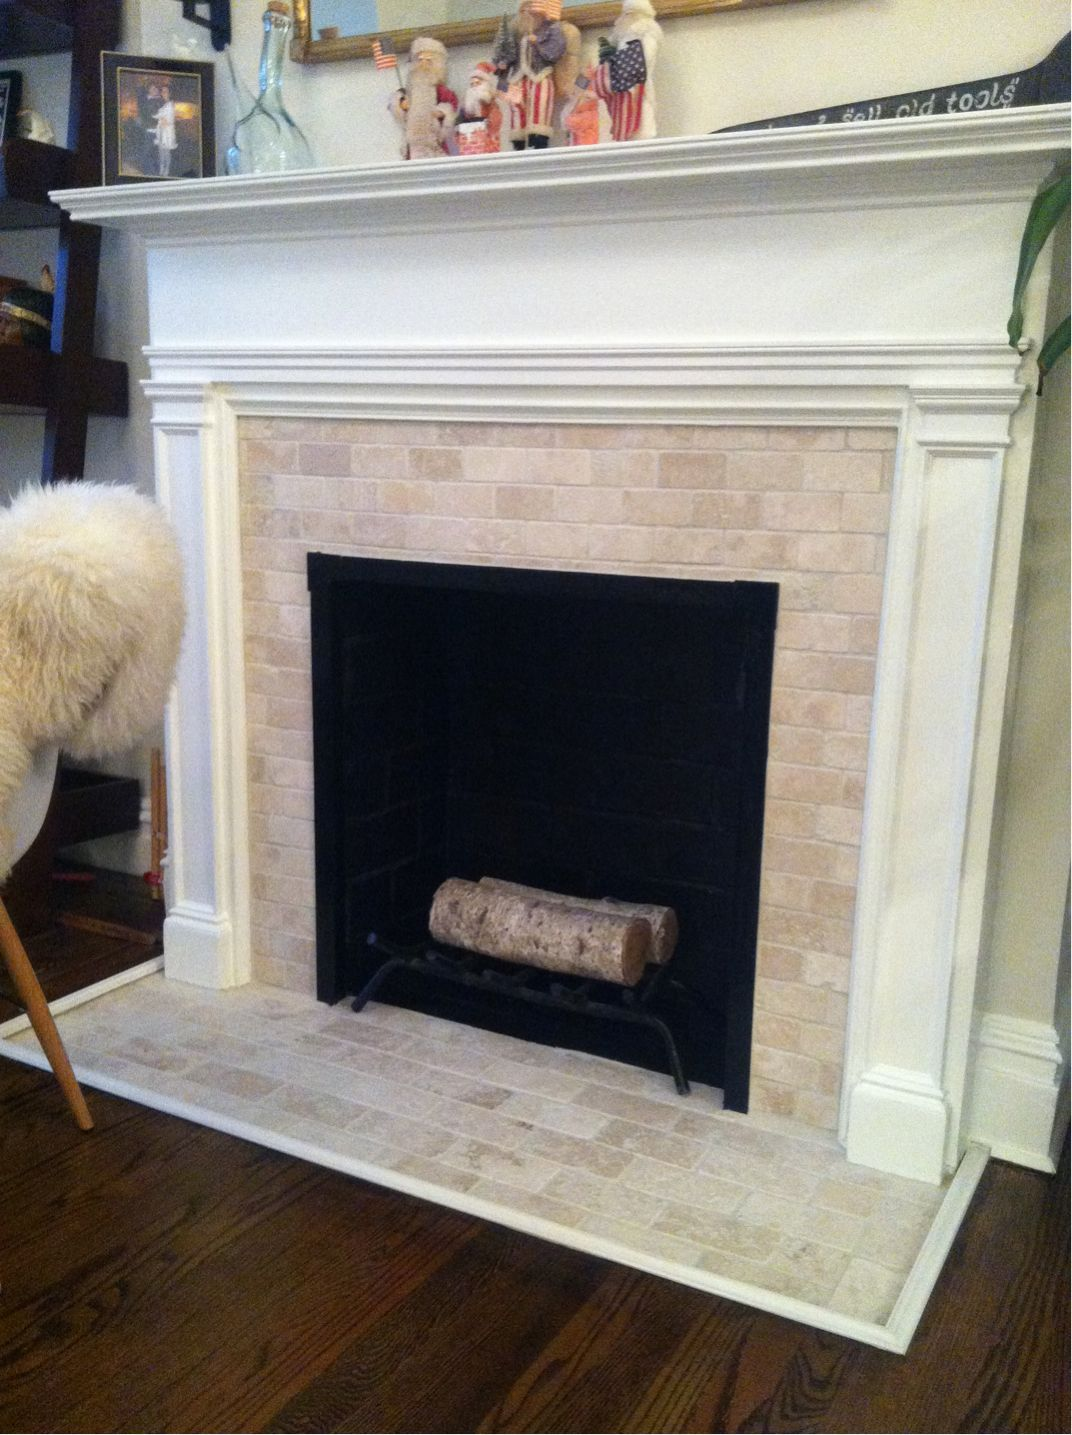 Finito Travertine Subway Tile Fireplace Thefan Our Own Fan